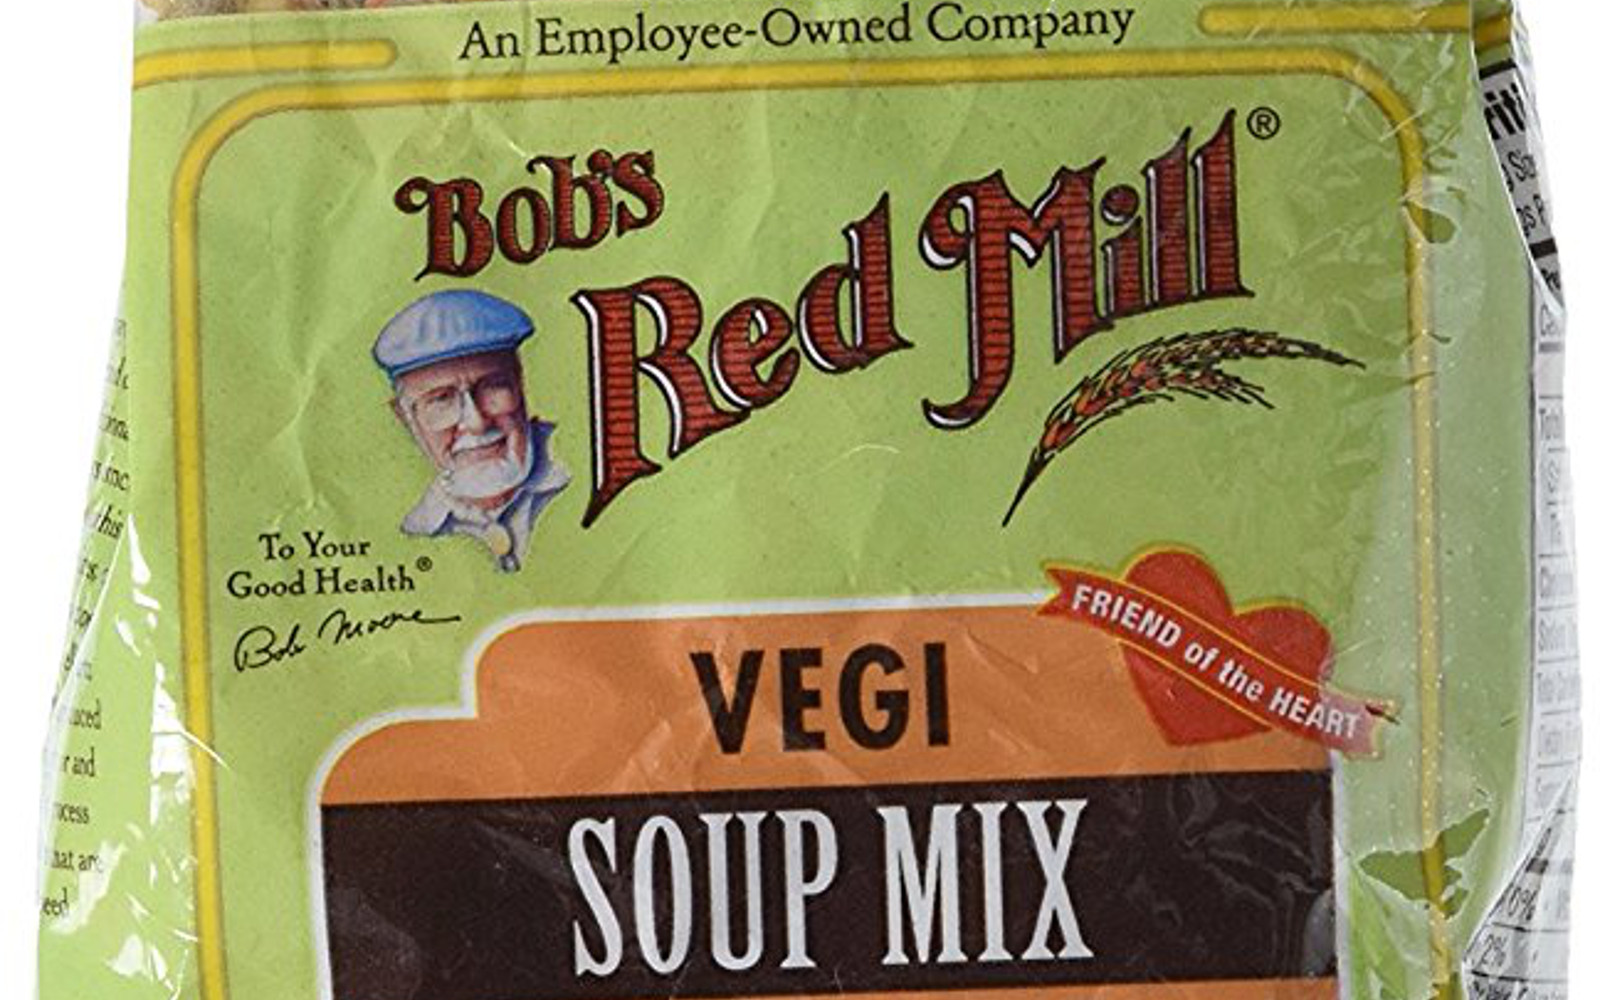 Healthy Amazon Soup Finds for the Vegan College Student | Vegan Bob's Red Mill, Vegi Soup Mix, 28 oz